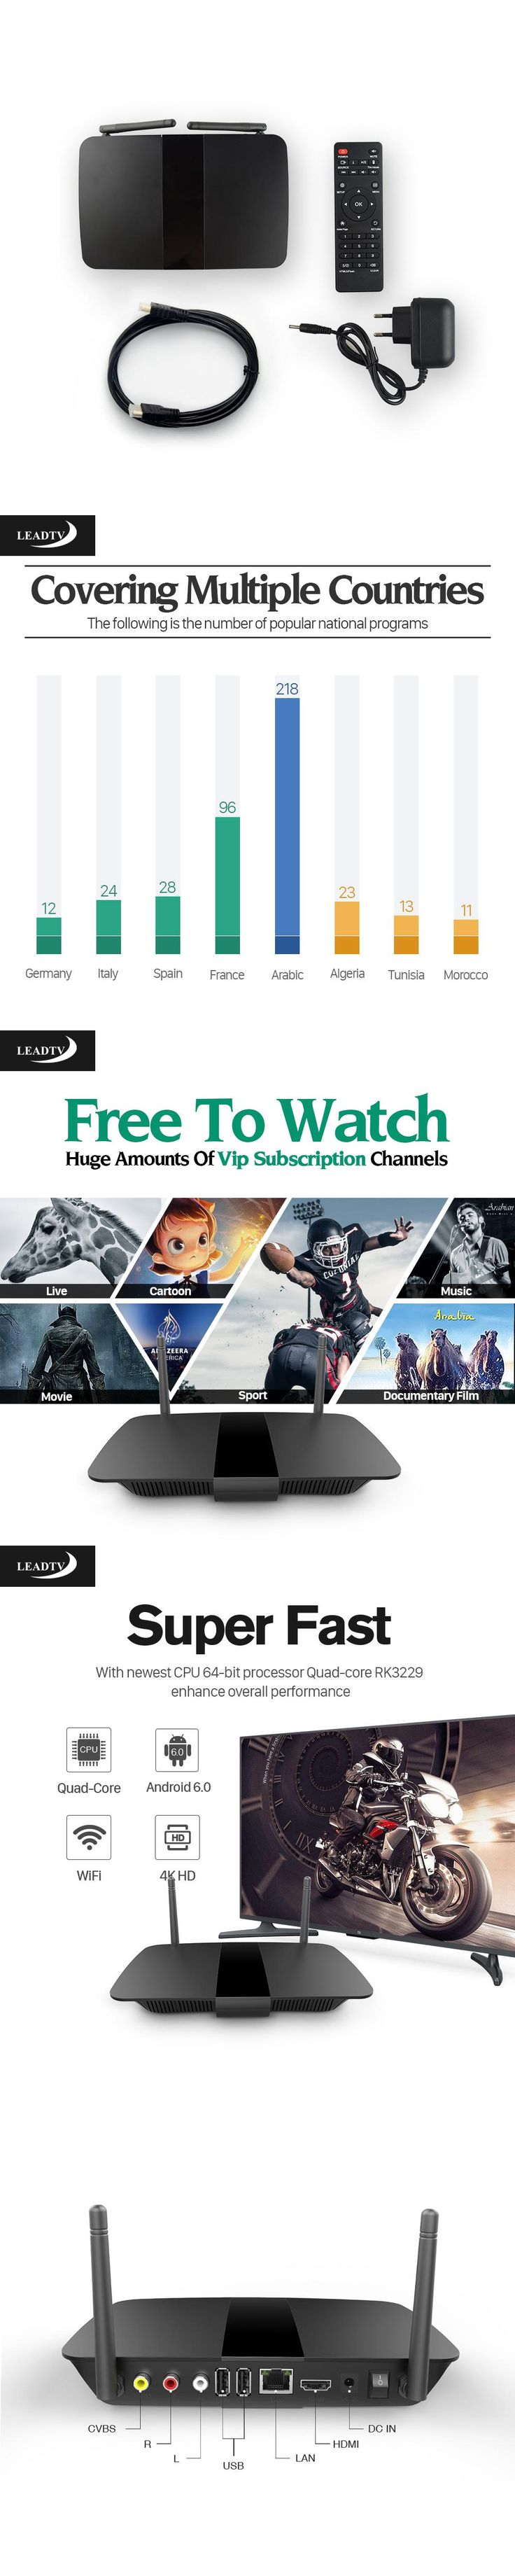 Q1504 Android IPTV Set Top Box ARM Cortex-A7 Quad Core Andriod 6.0 Player 700+ French Arabic Channels IPTV leadtv Subscription